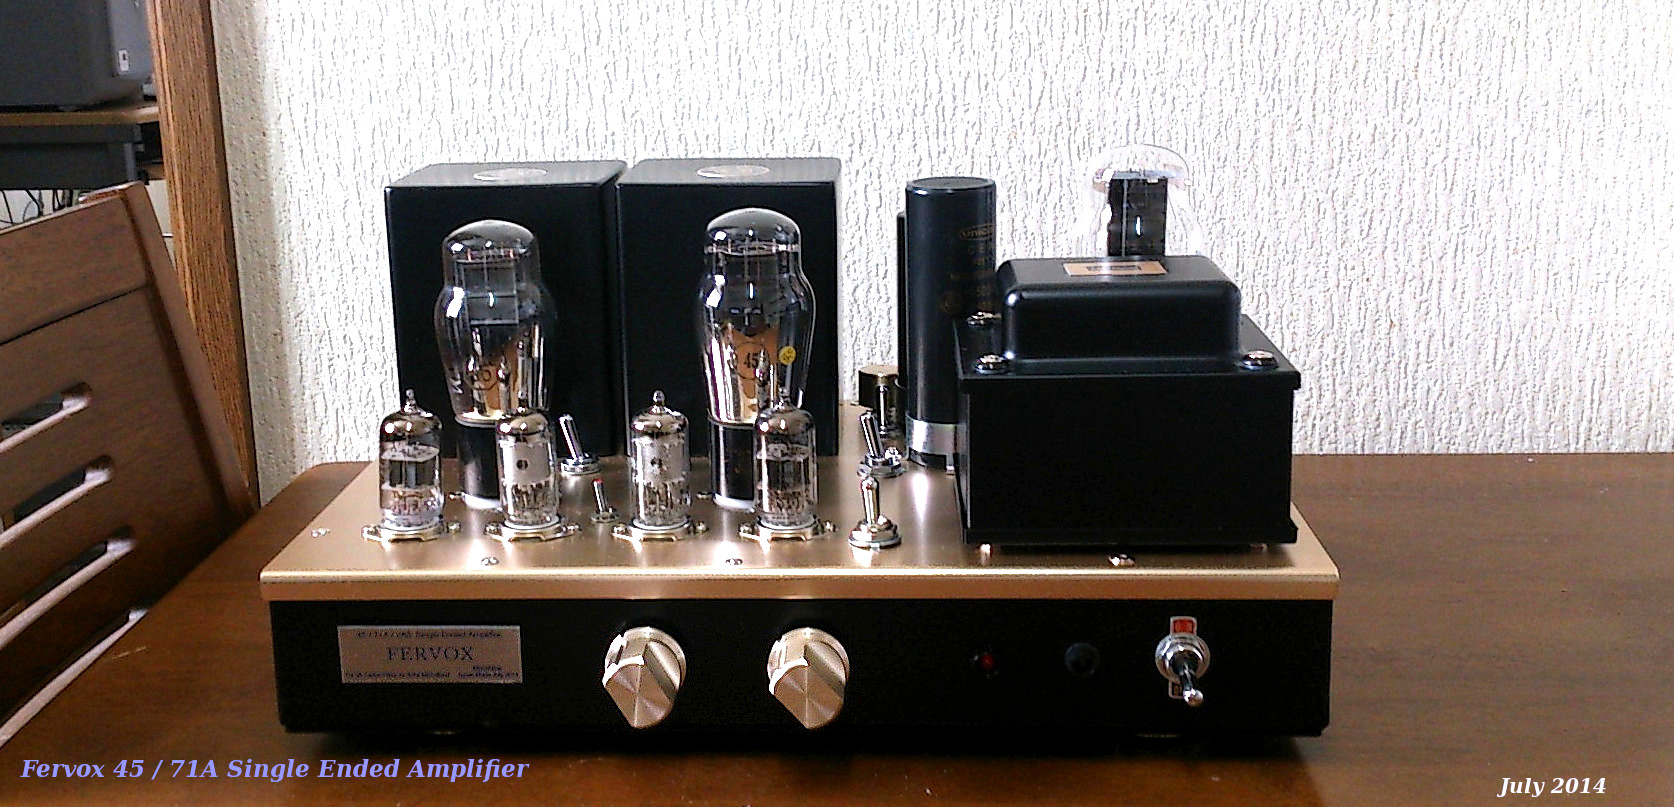 Hashimoto H20-7U 45 Single Ended Amplifier